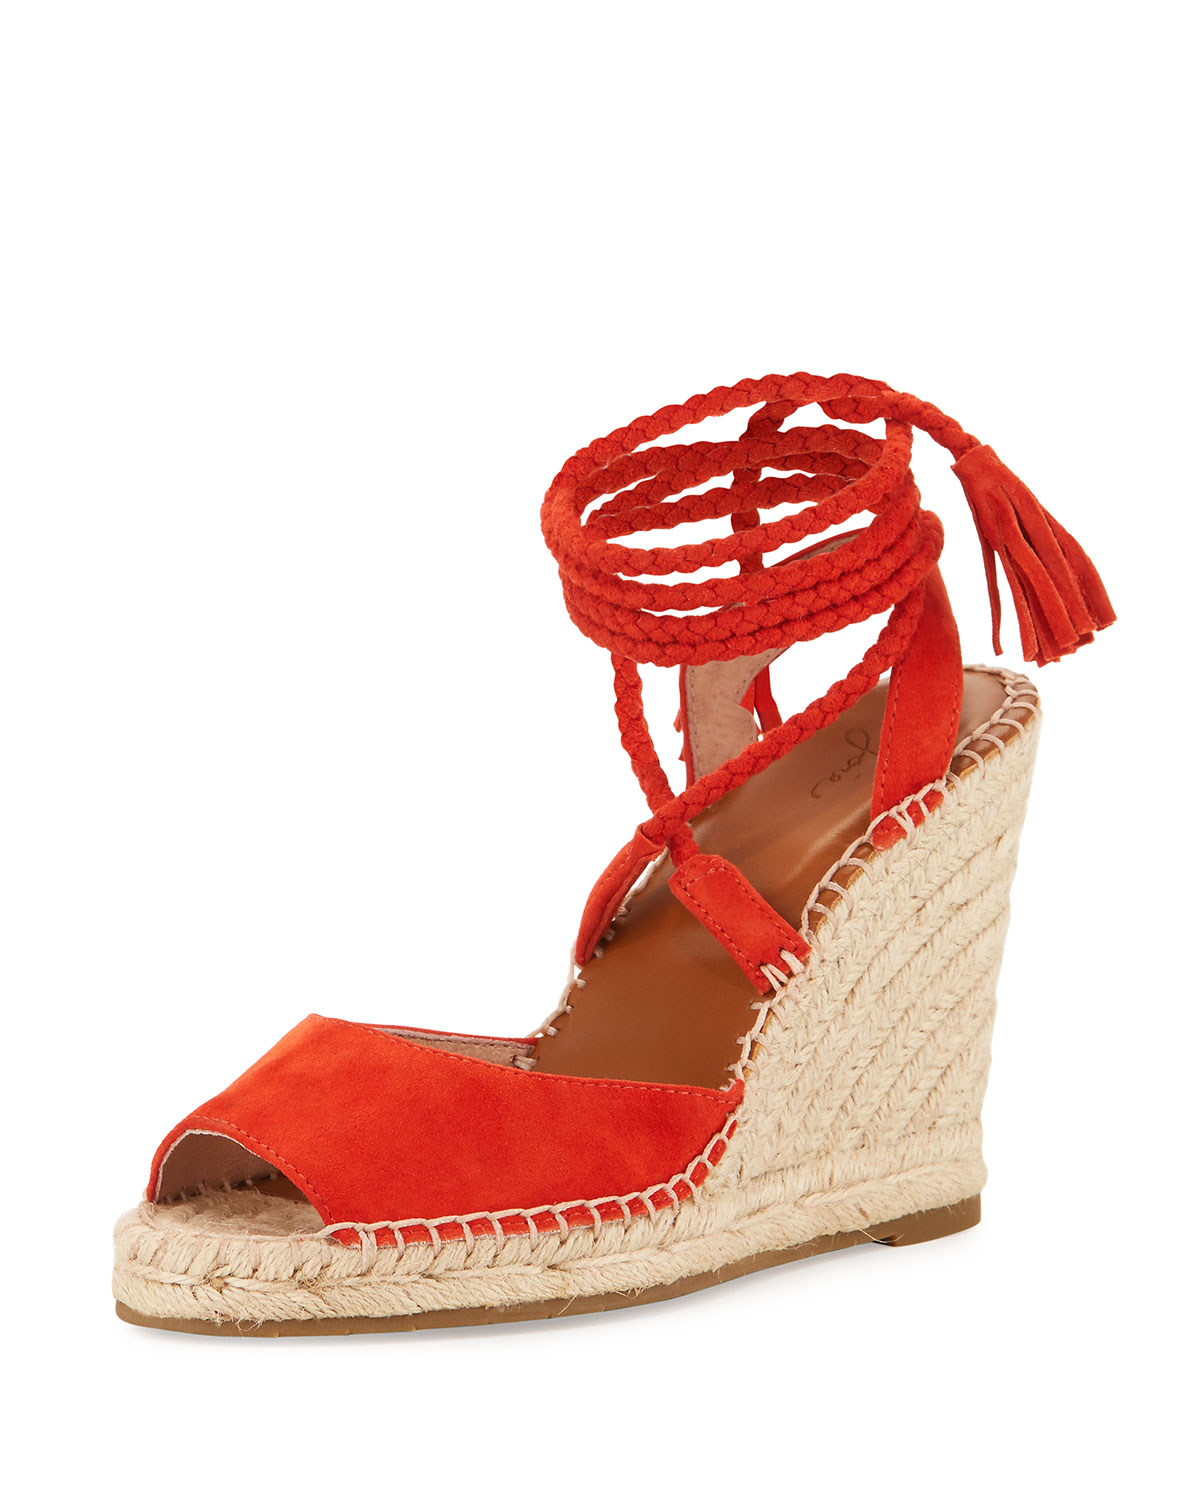 8eec18c1c3a Joie Phyllis Suede Lace-Up Wedge Espadrille Sandal